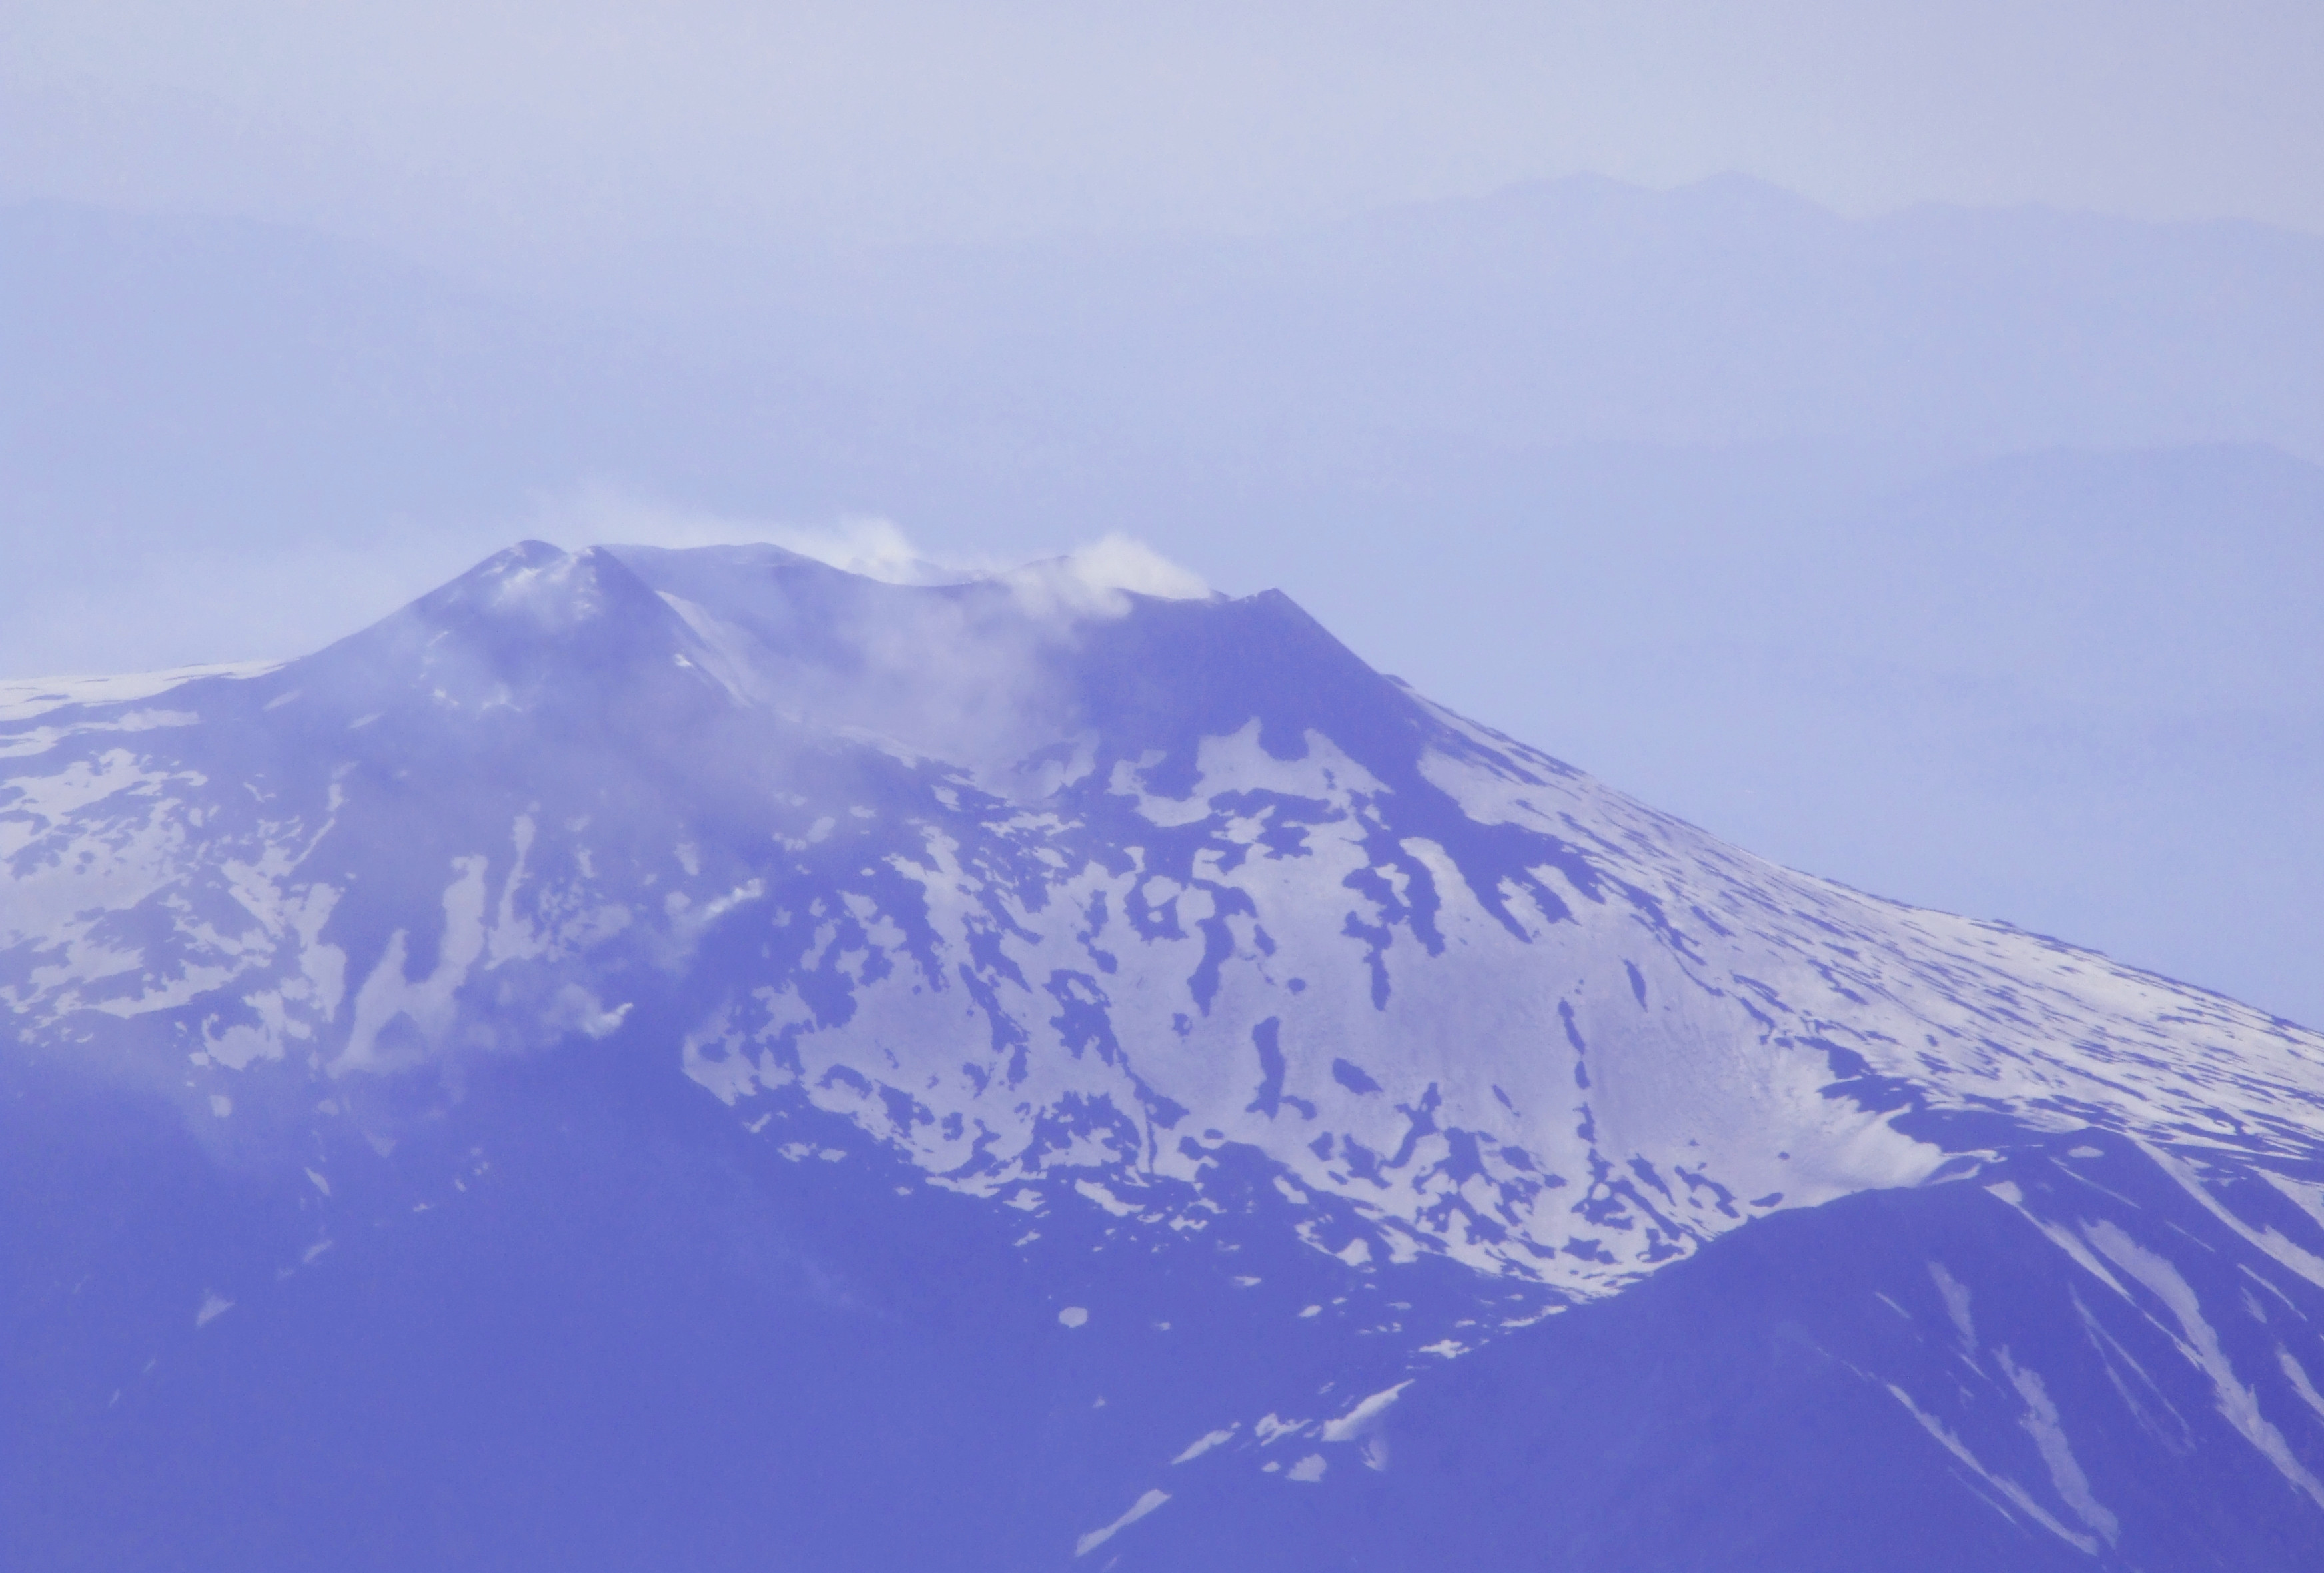 Etna volcano - sicilia - italy - creative commons by gnuckx photo